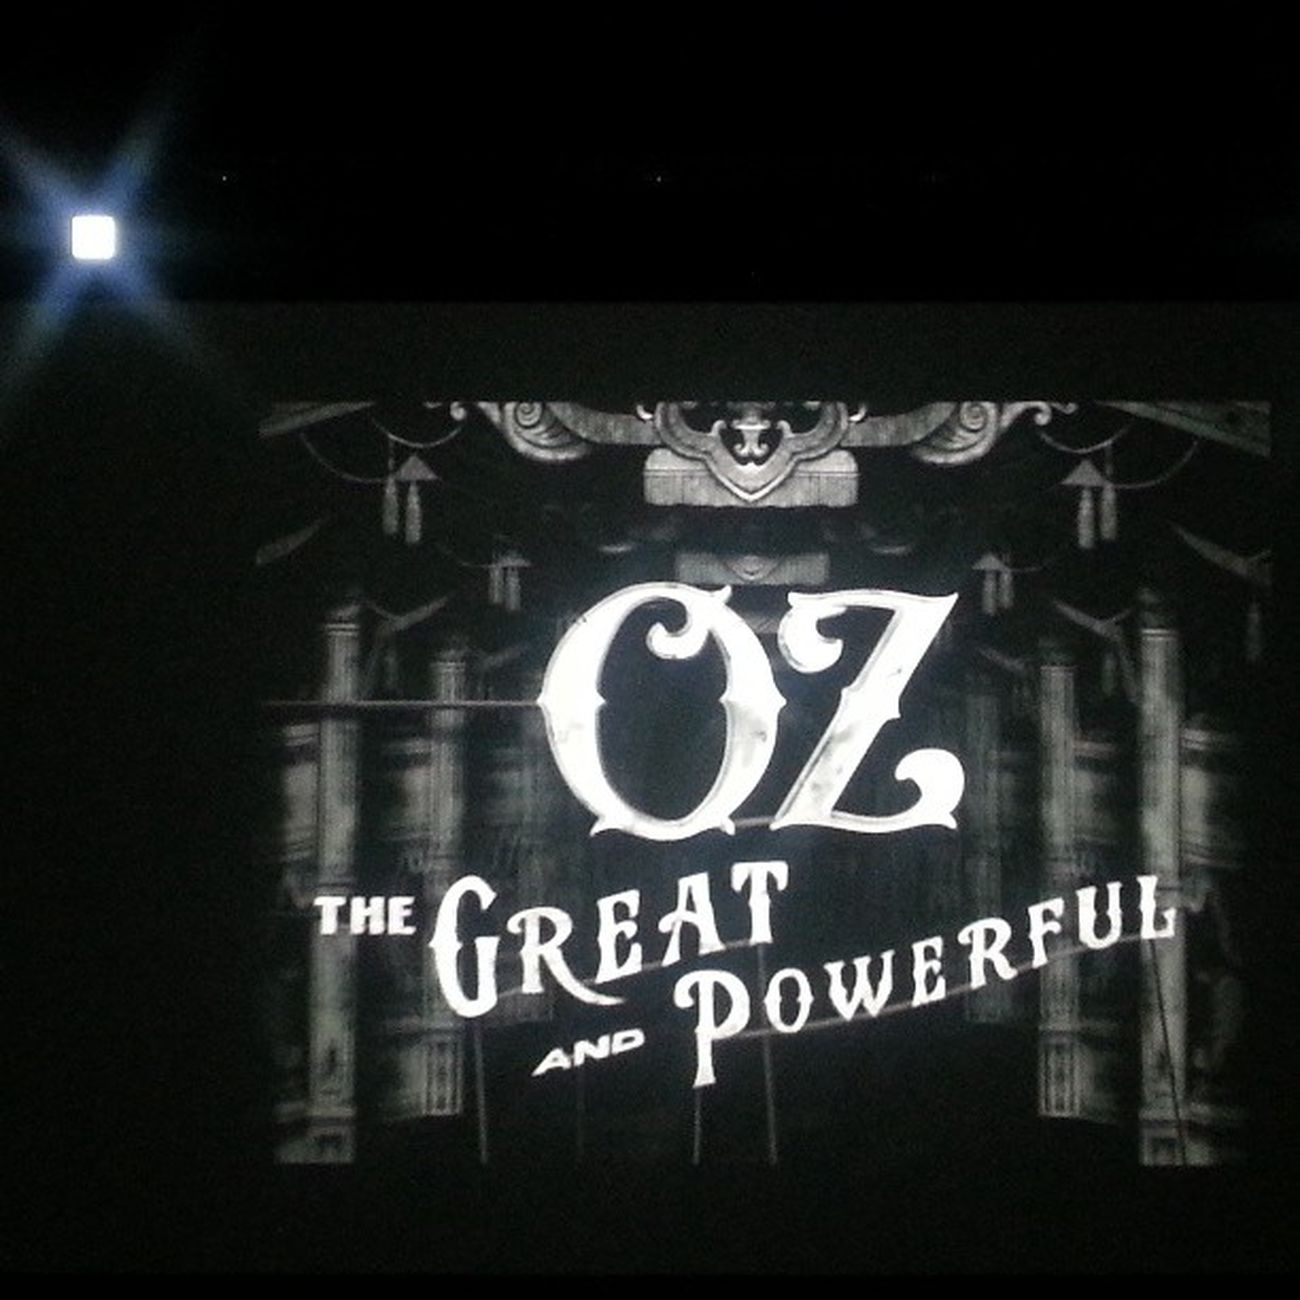 At the Cinema watching Oz the great and powerful Ozthegreatandpowerful